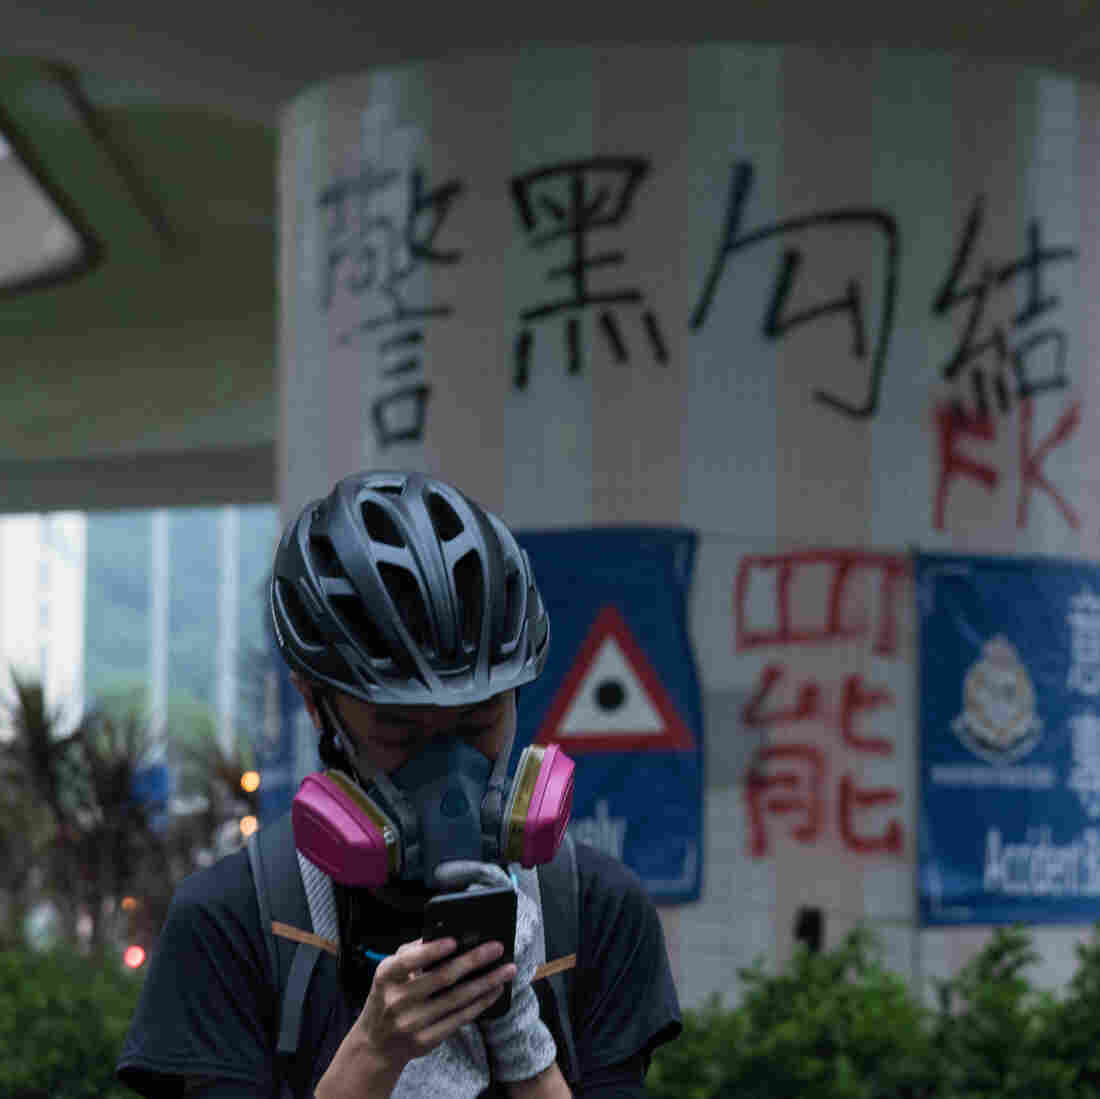 Westlake Legal Group gettyimages-1160880828_sq-cde7ed6721ba4ae9e6559349766d0a05abc30ca0-s1100-c15 After China Objects, Apple Removes App Used By Hong Kong Protesters